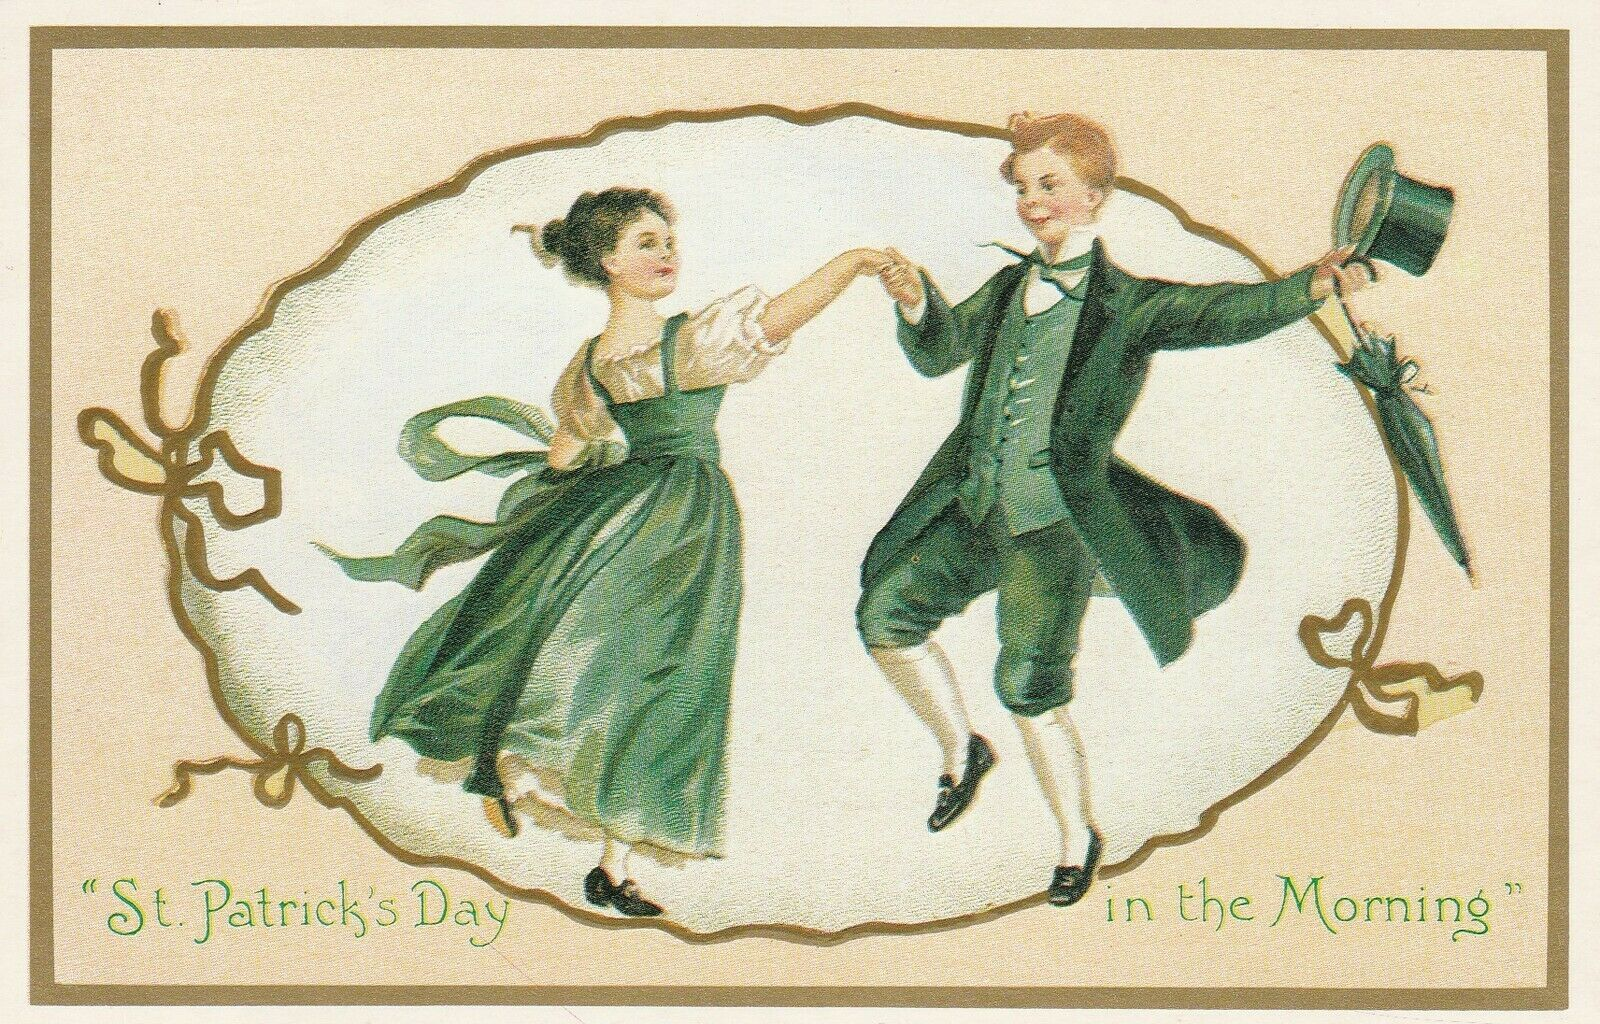 Vintage Postcard St. Patrick's Day Dancing Couple Unused Reproduction